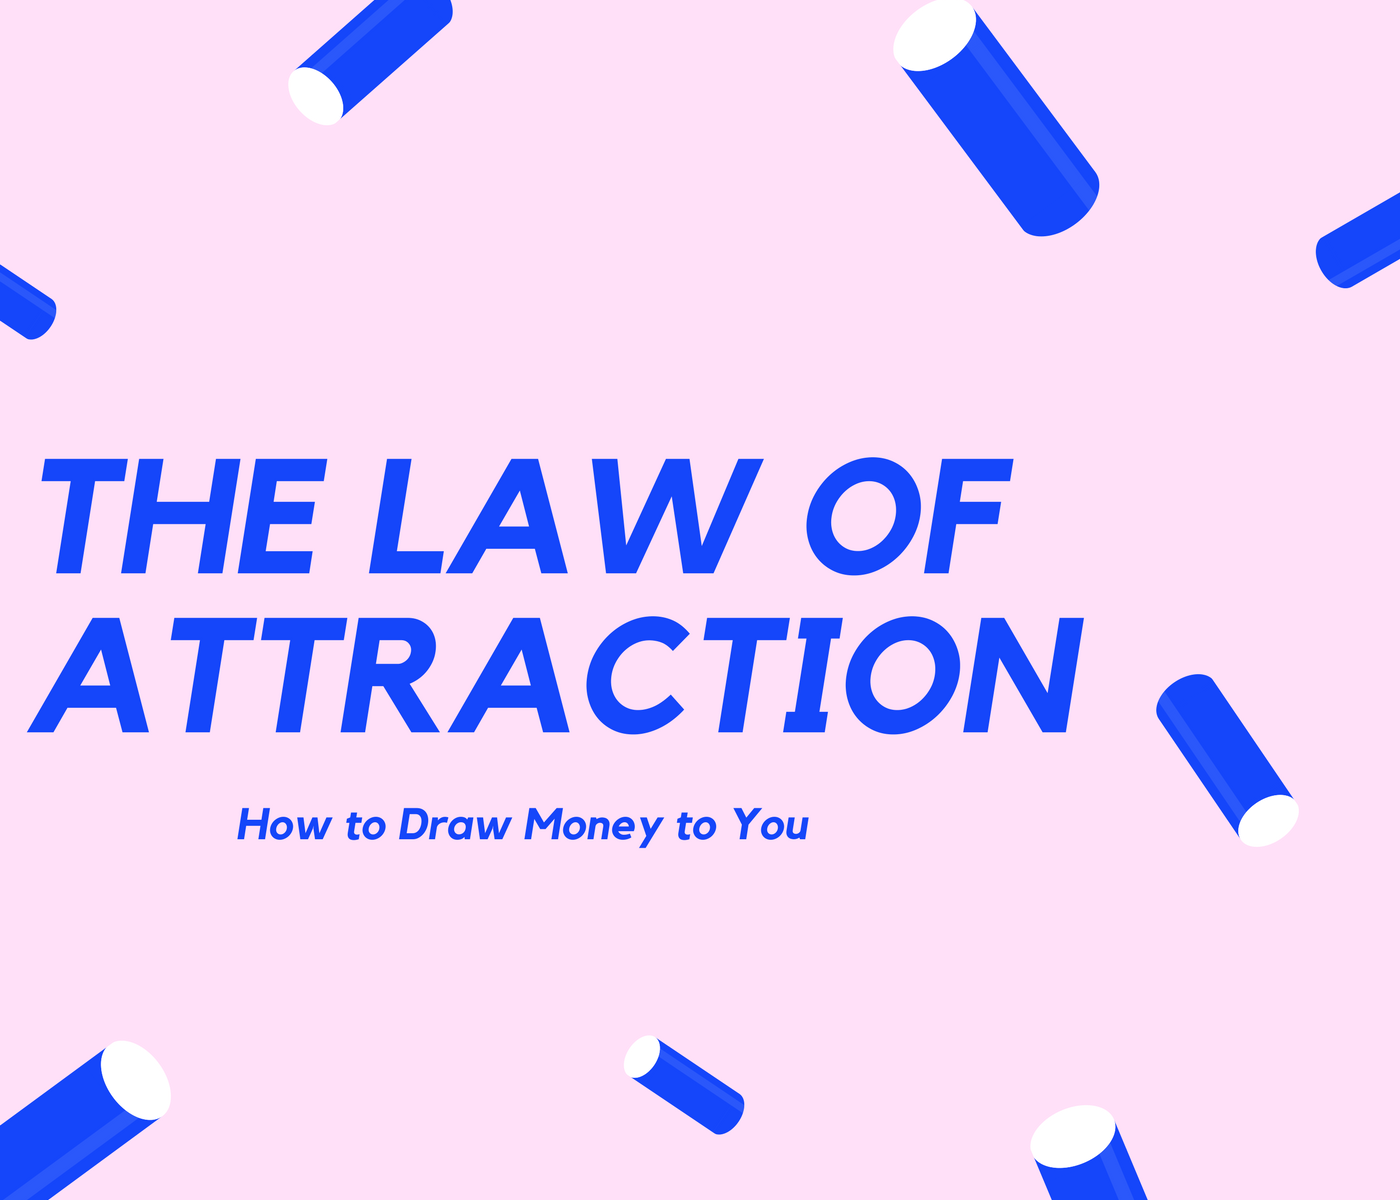 THE LAW OF ATTRACTION How to Draw Money to You